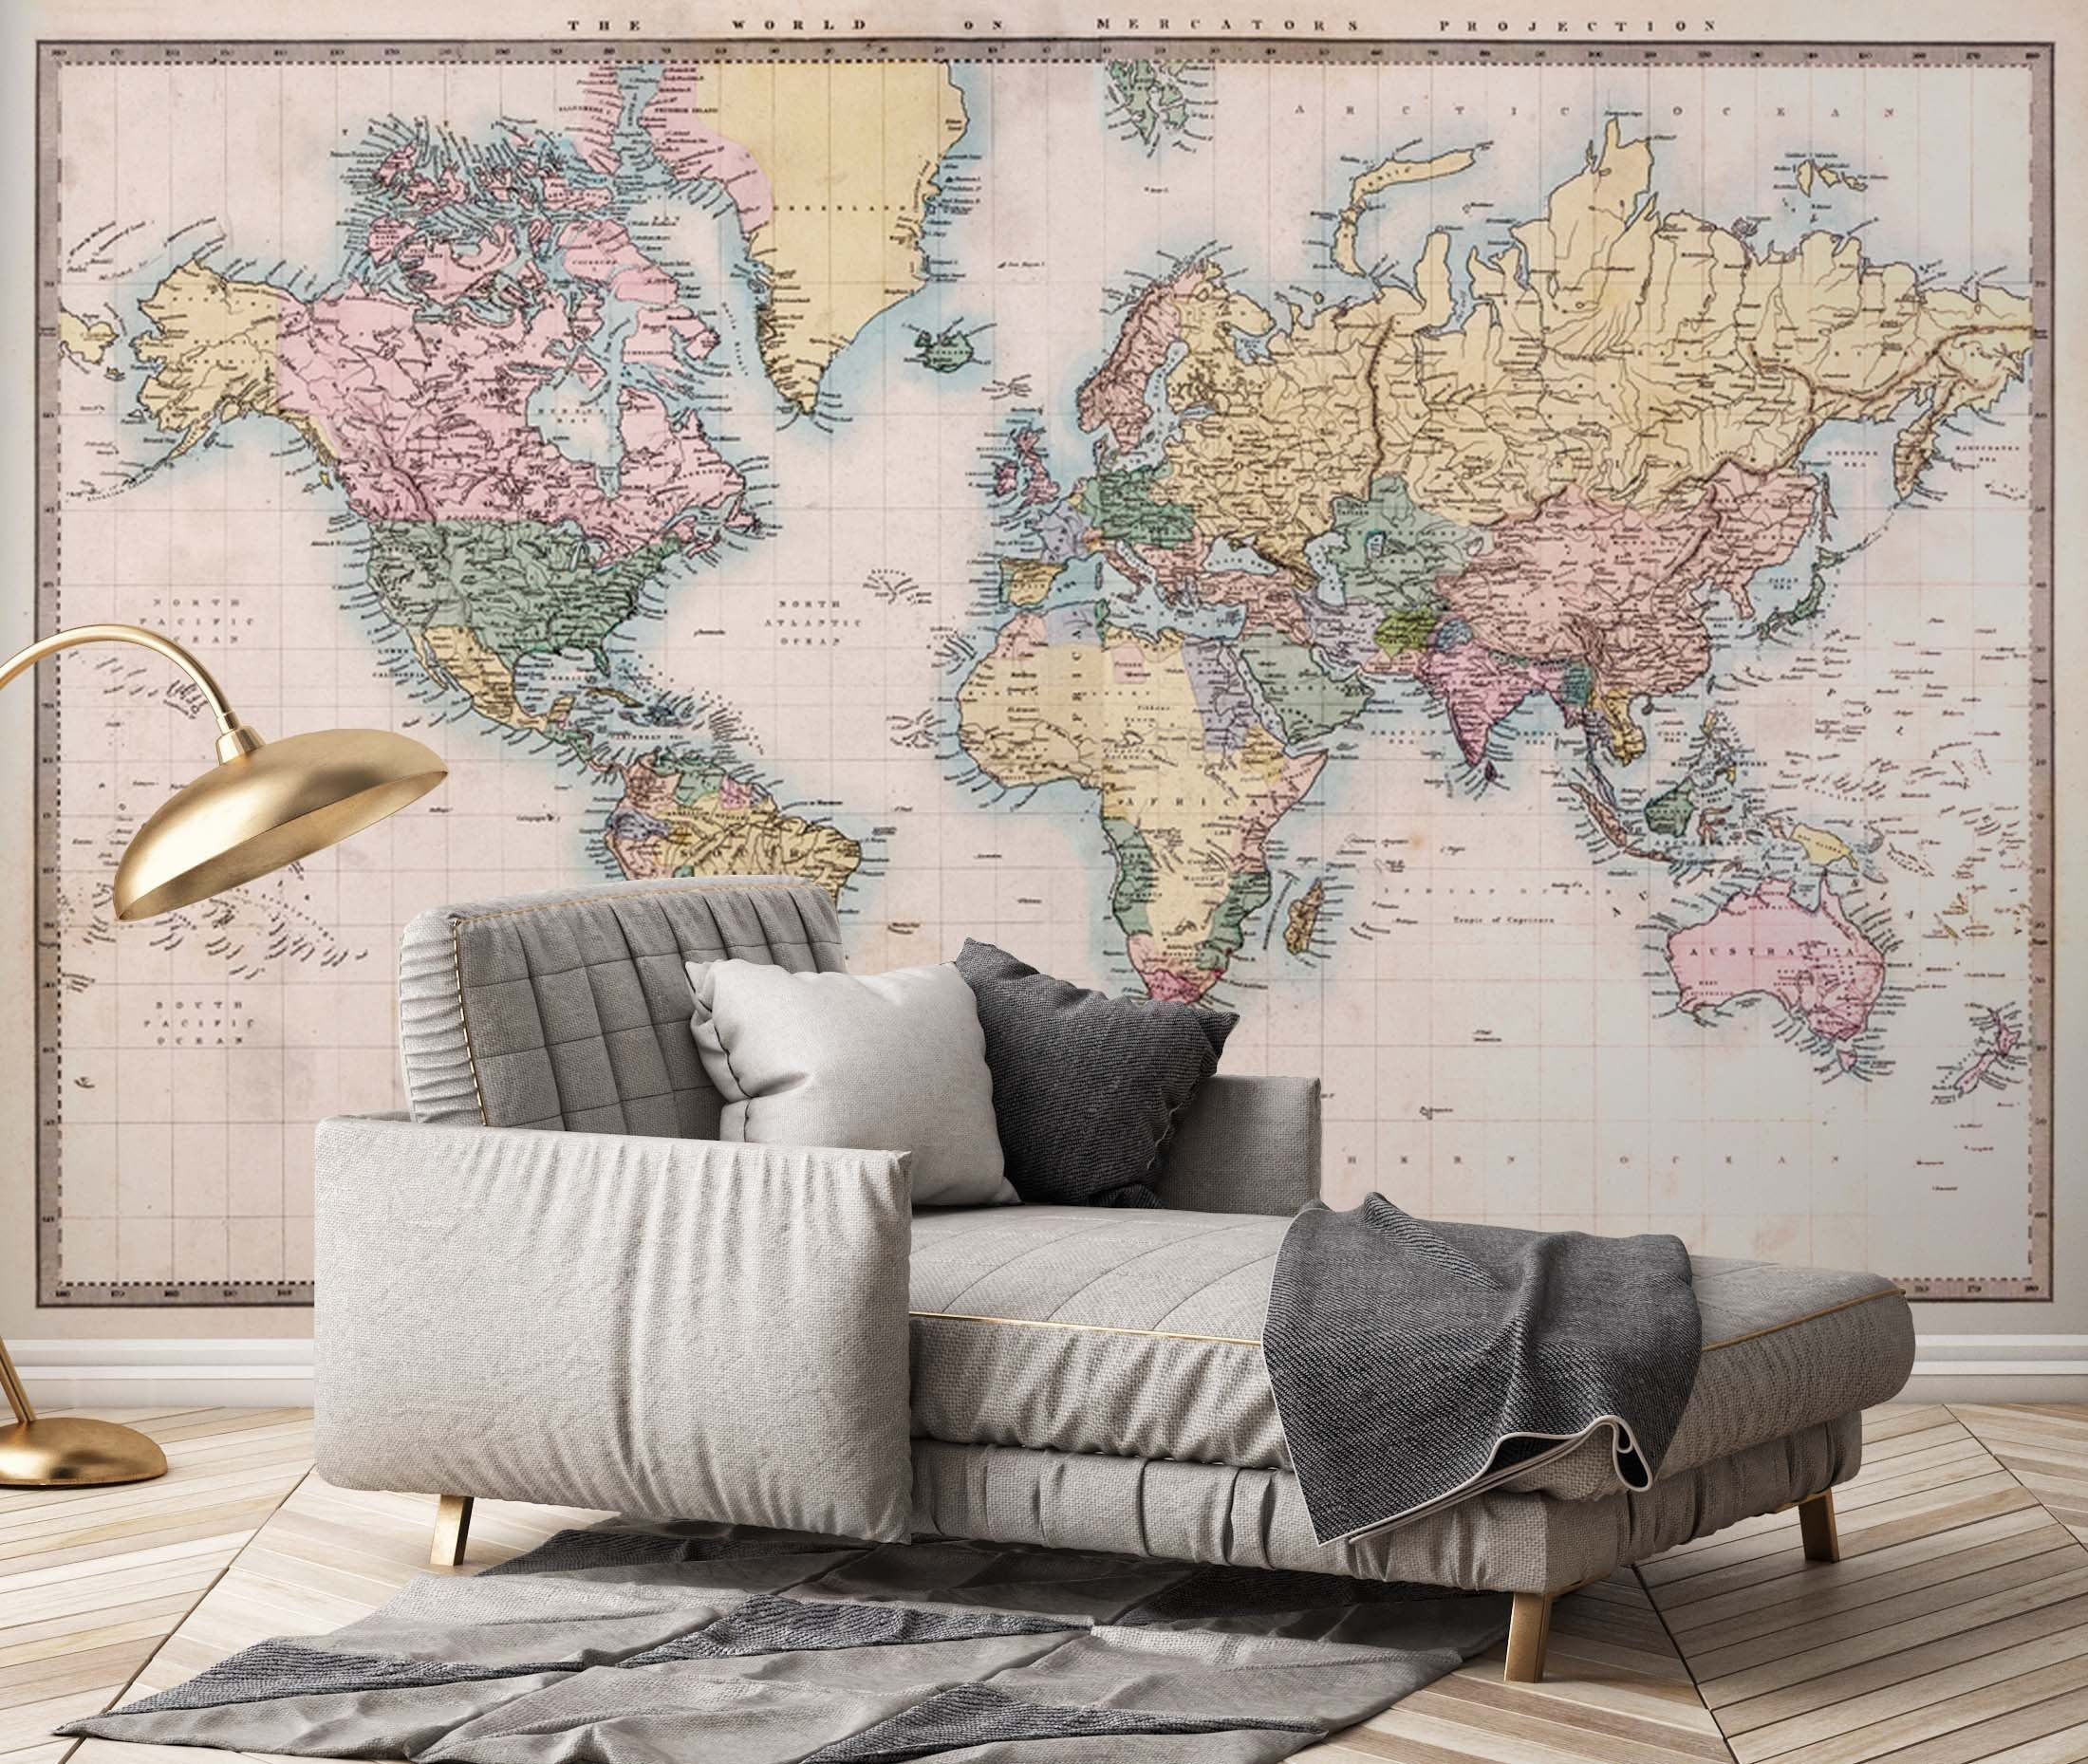 Colorful Old World Map Wallpaper Self Adhesive Peel And Stick Etsy Living Room Murals World Map Wallpaper Map Wallpaper